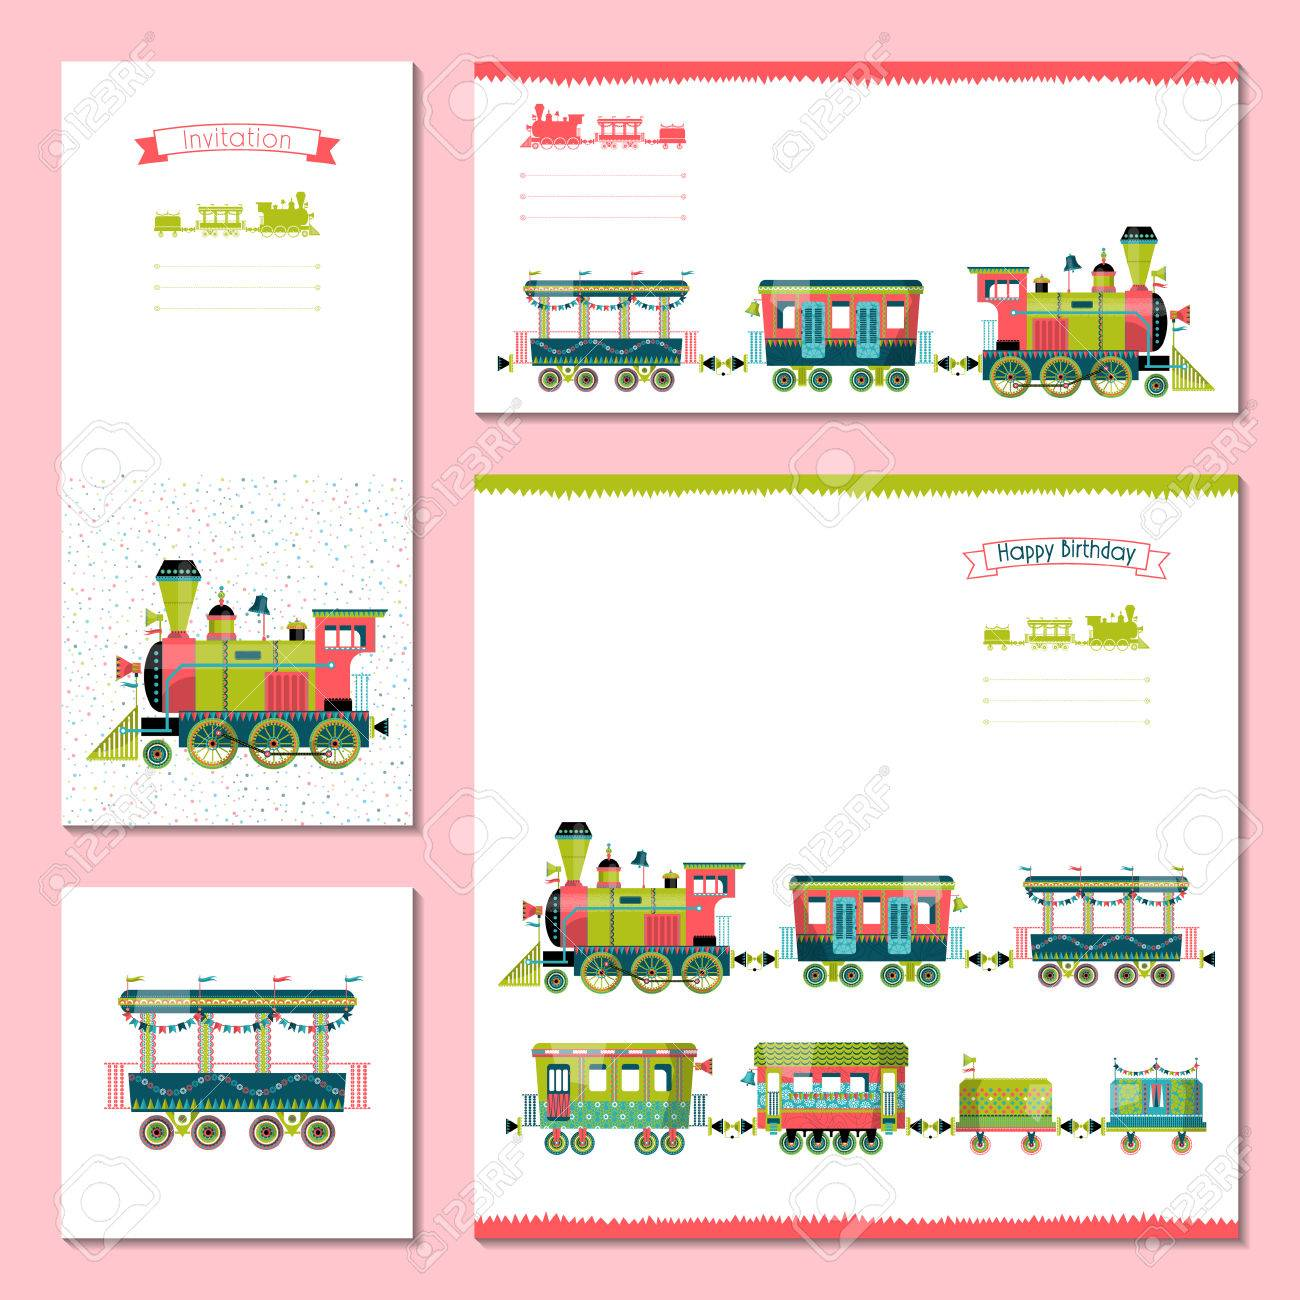 4 Universal Cards With Toy Train Template Birthday Anniversary Childrenâ S Party Invitation Special Event Vector Illustration